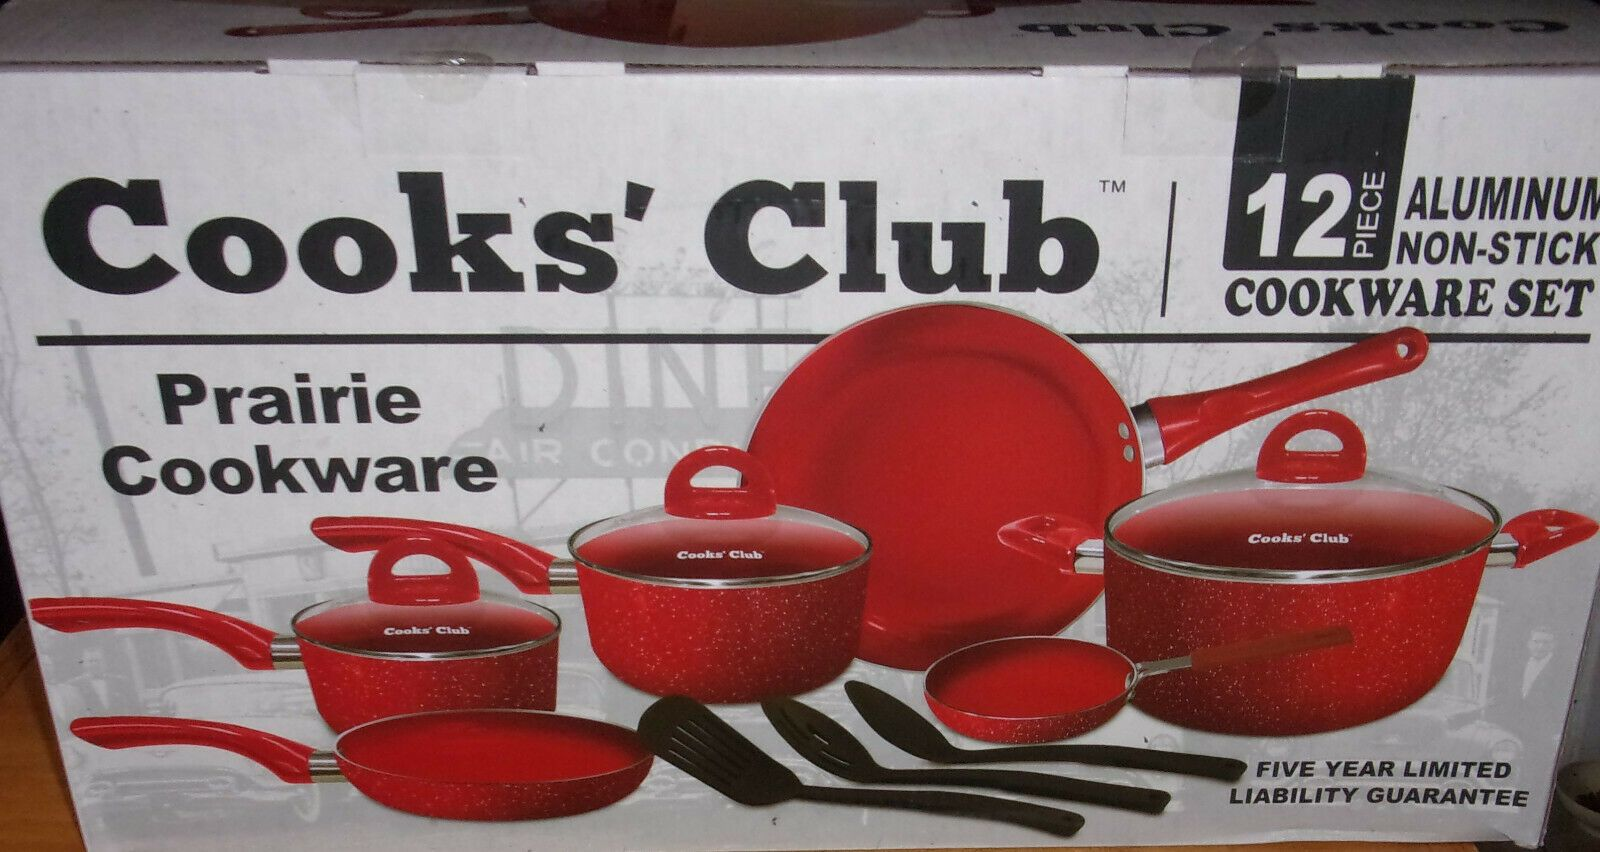 Details About 12pc Cookware Set Cooks Club Prairie Red Aluminum